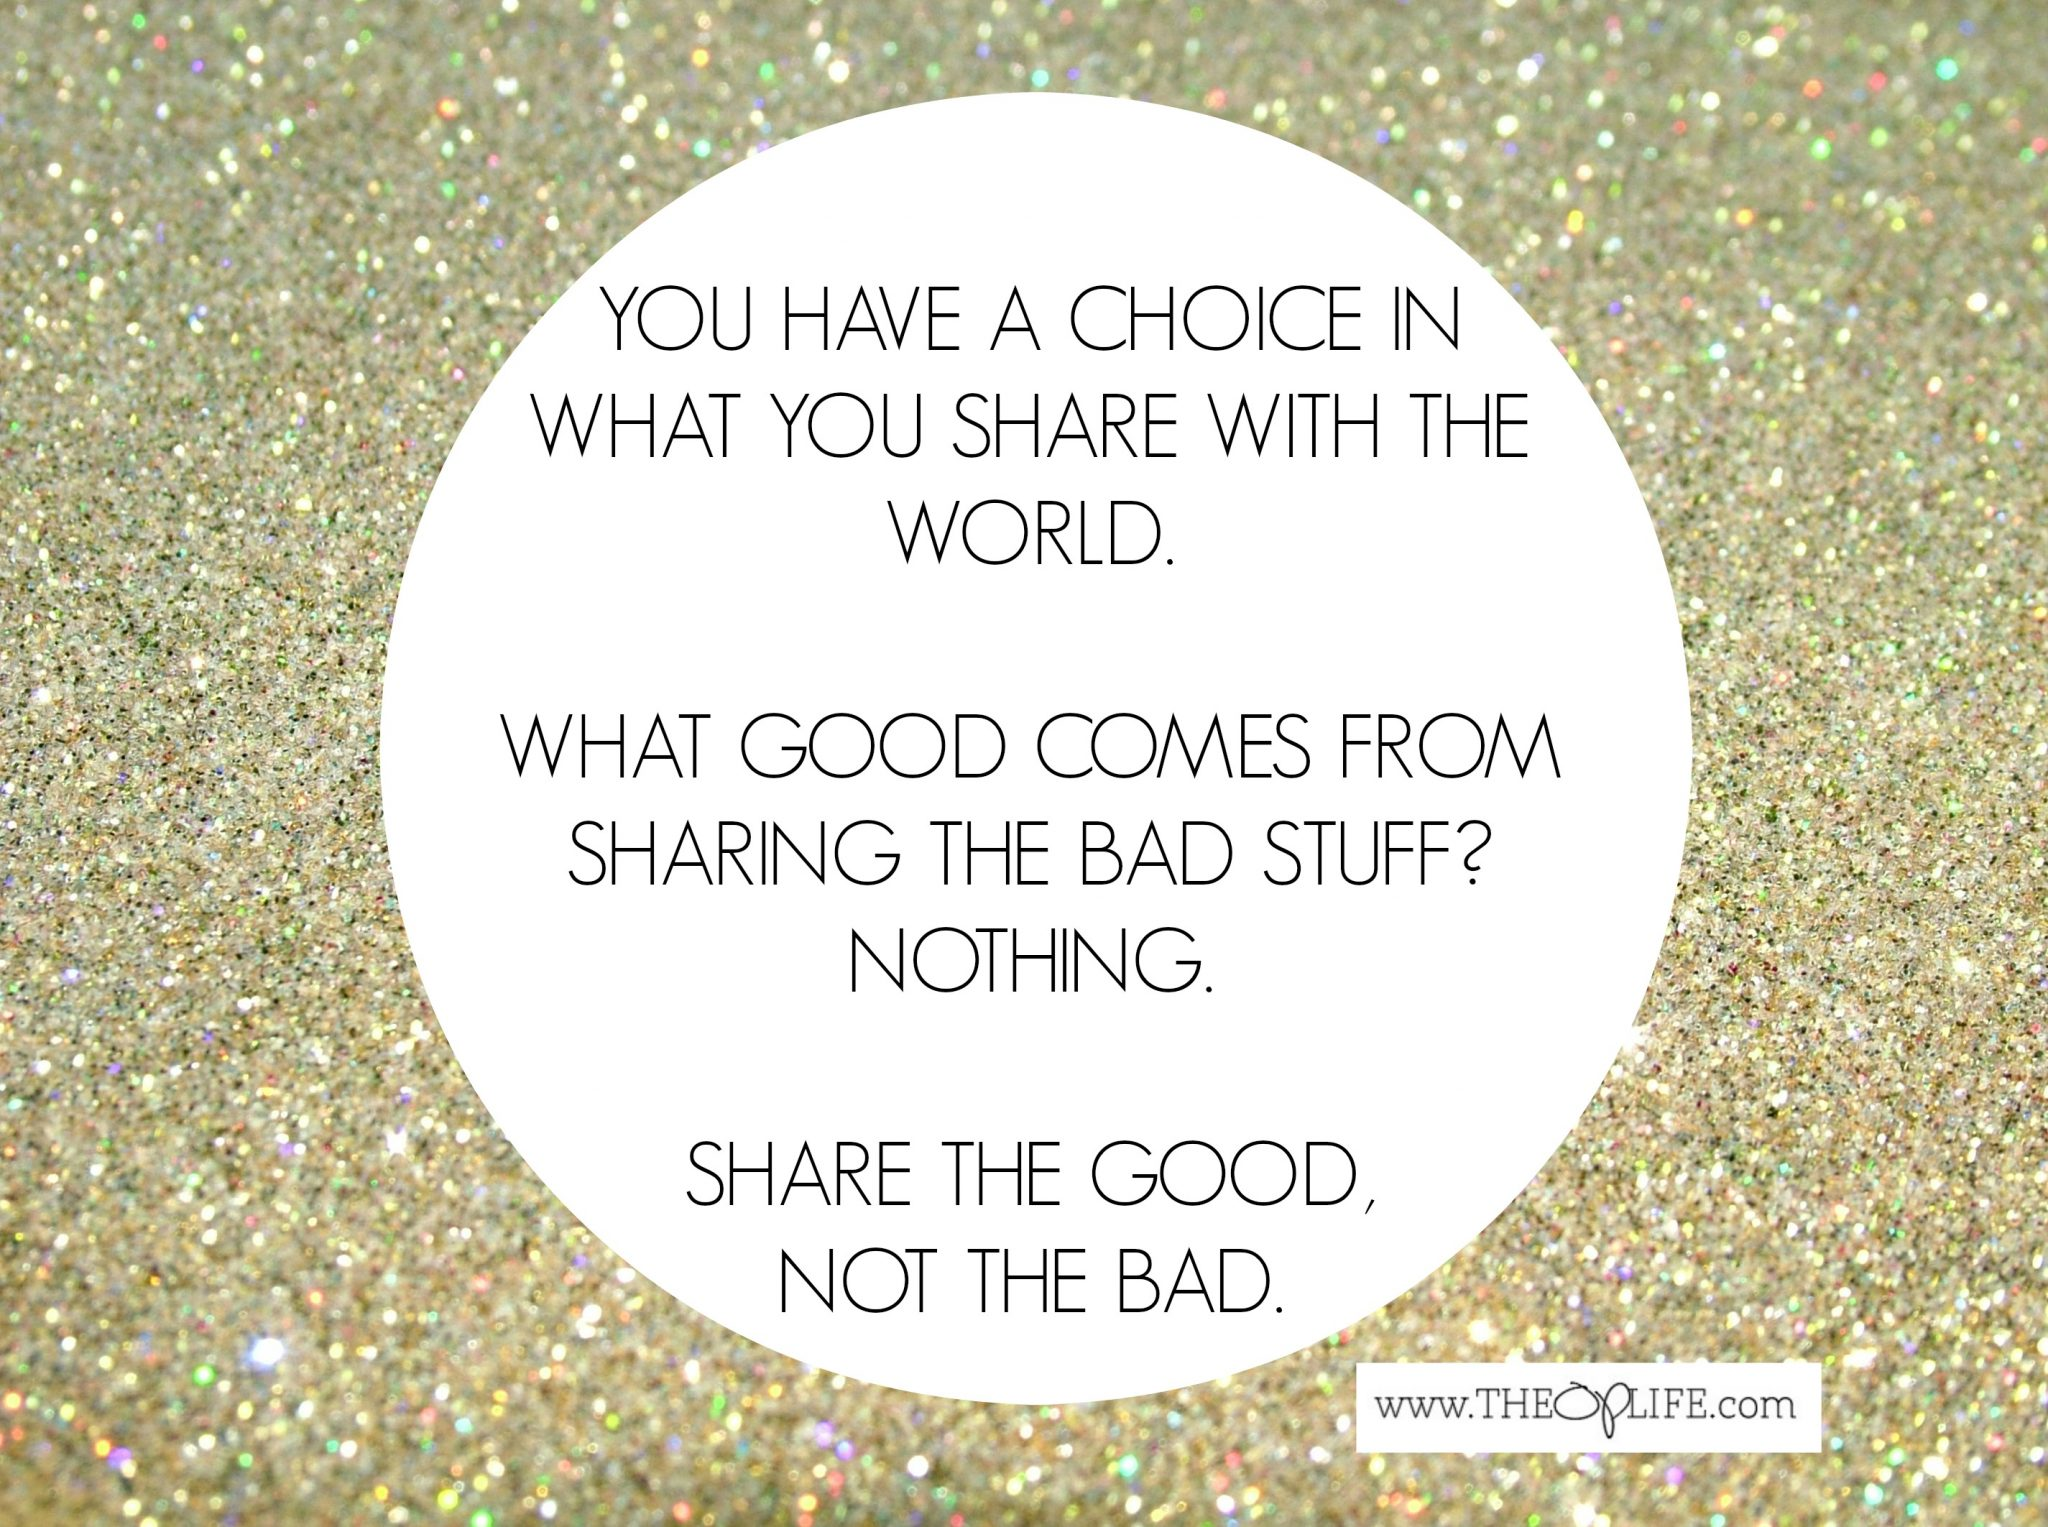 Share the good, not the bad.